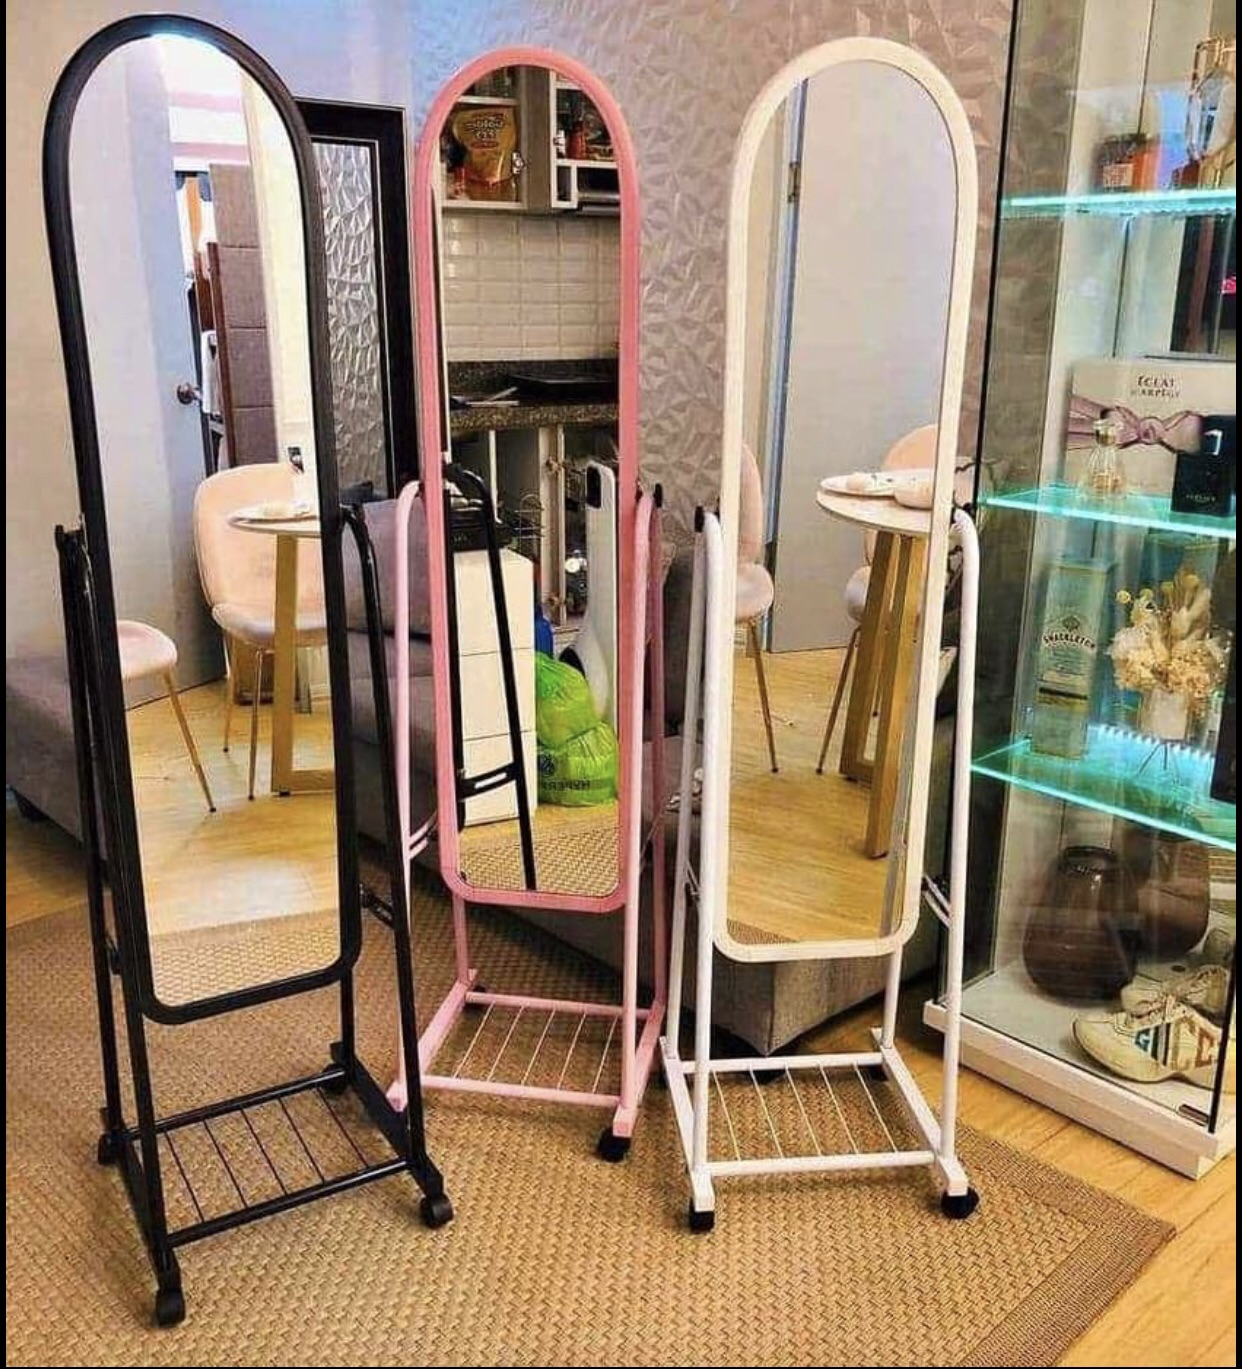 Whole Body Vanity Mirror Buy Sell Online Mirrors With Cheap Price Lazada Ph